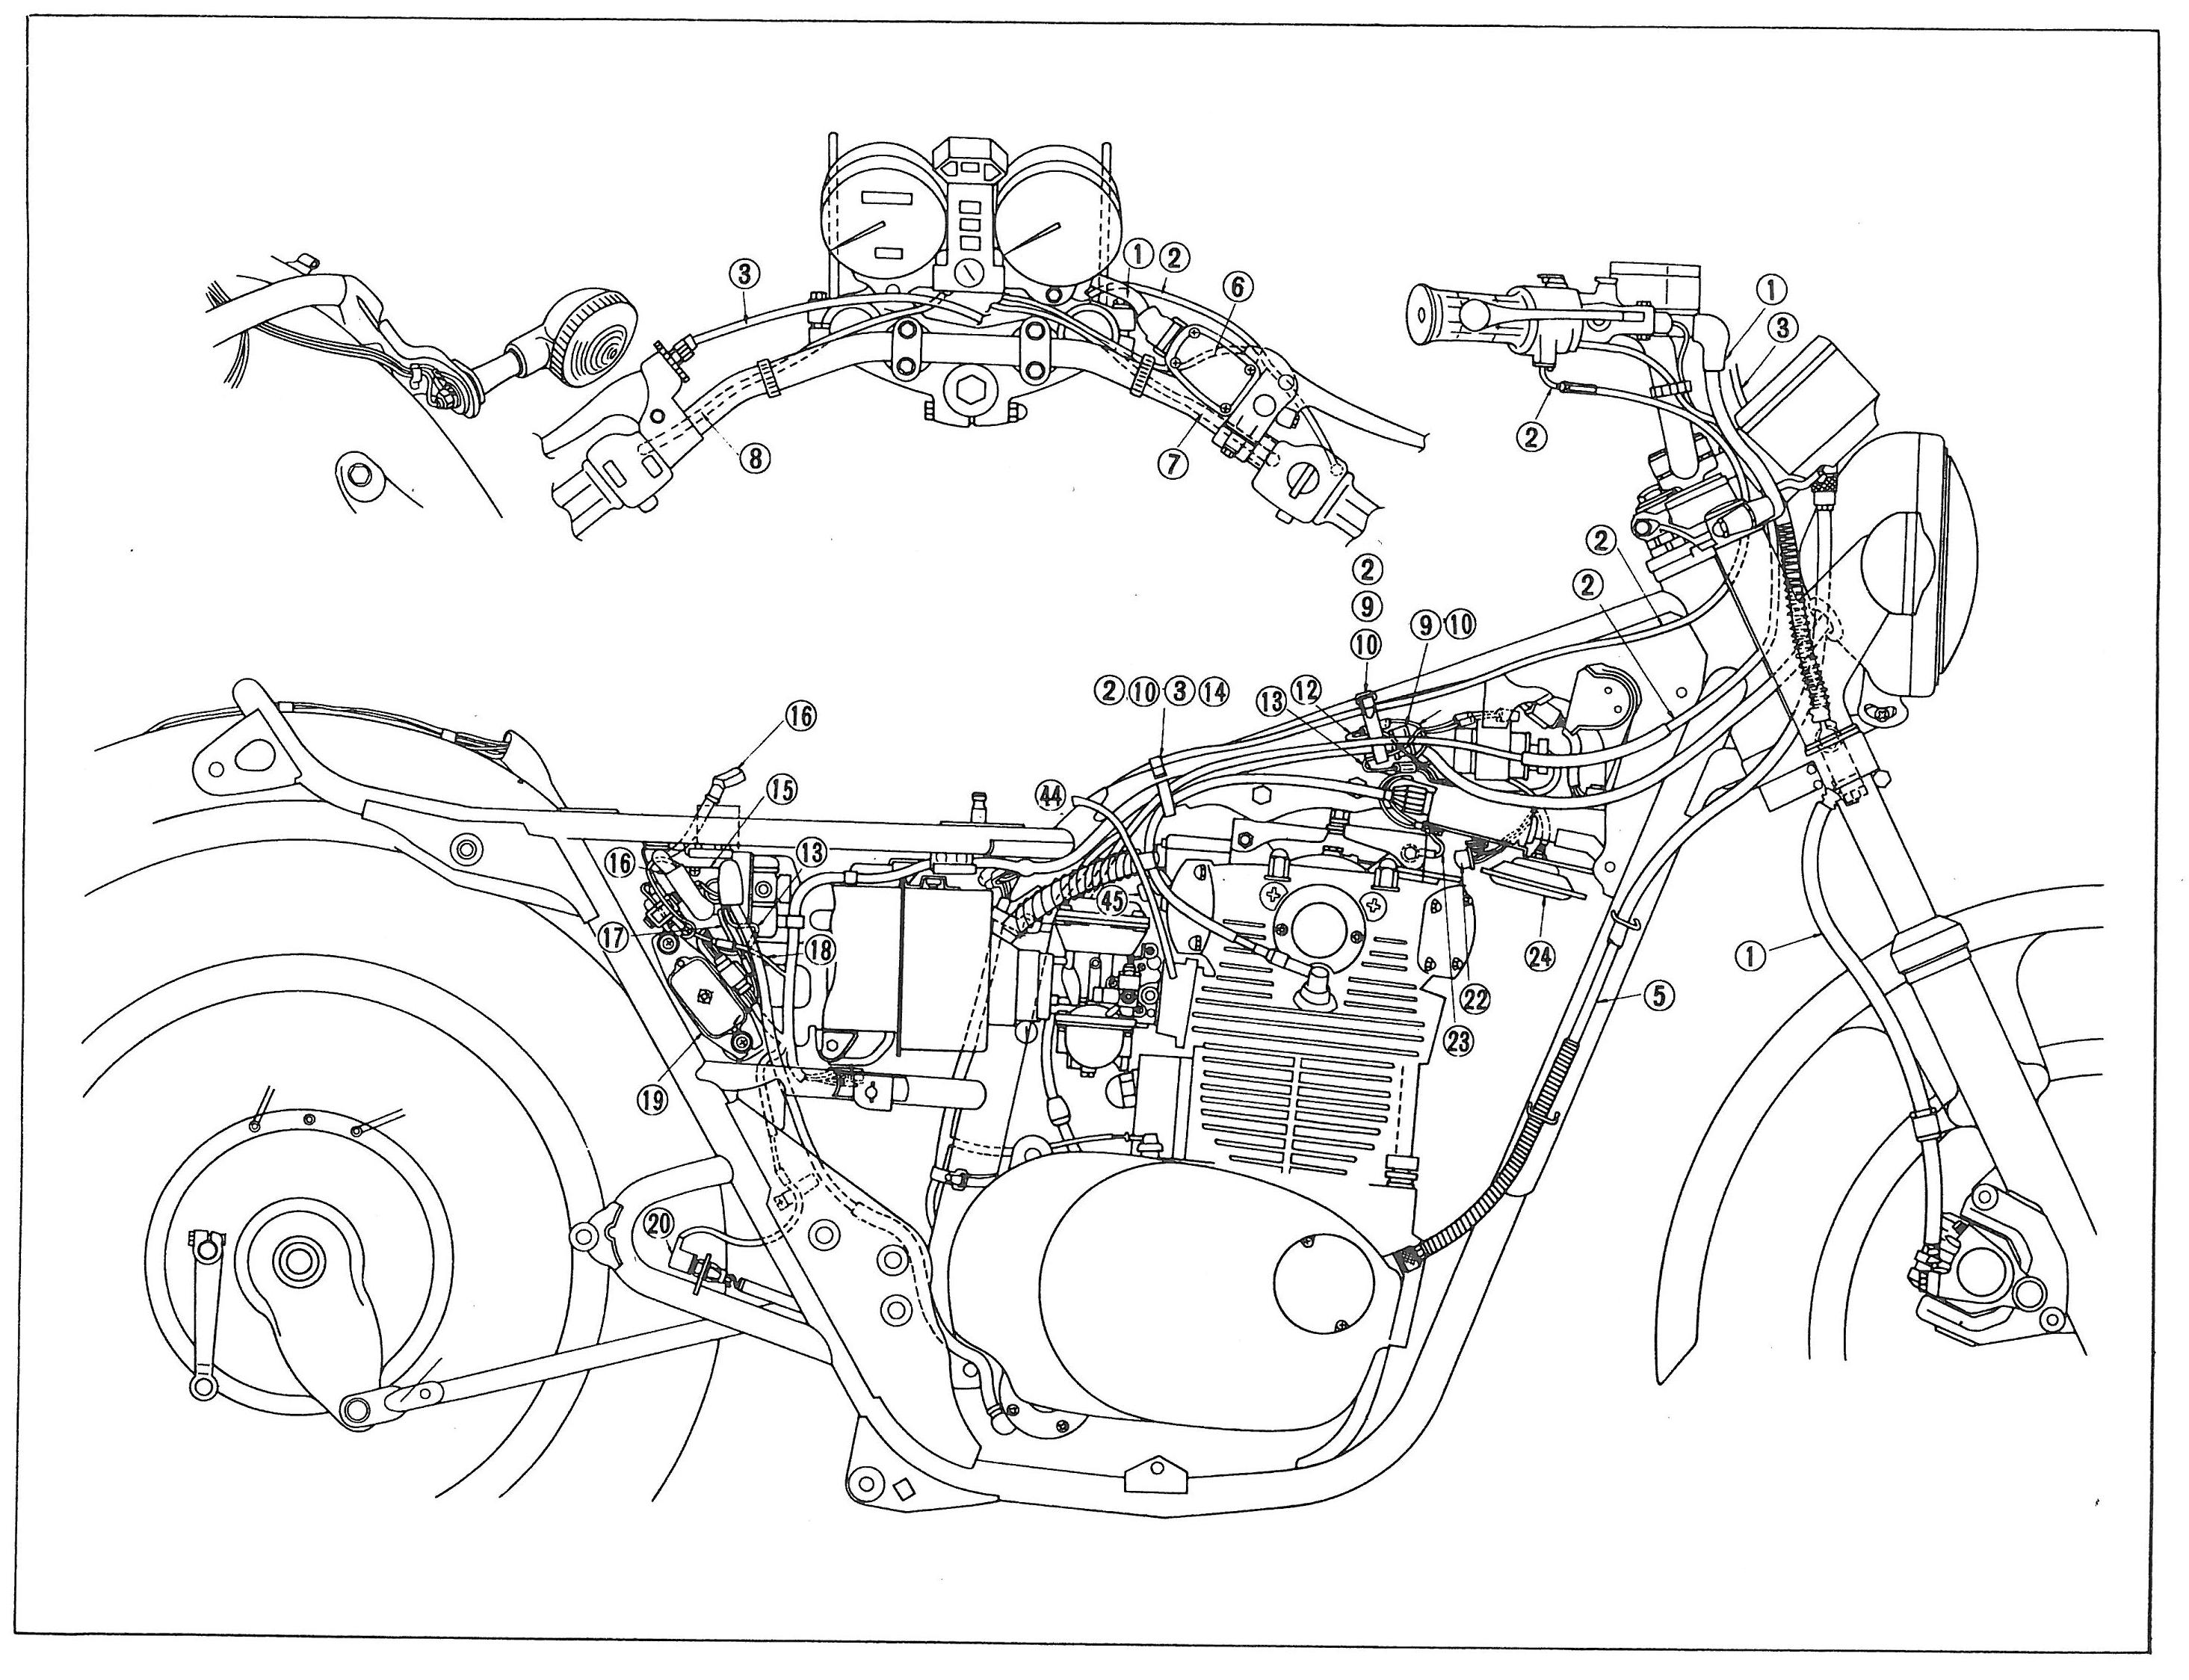 1979 xs650 electronic ignition wiring diagram